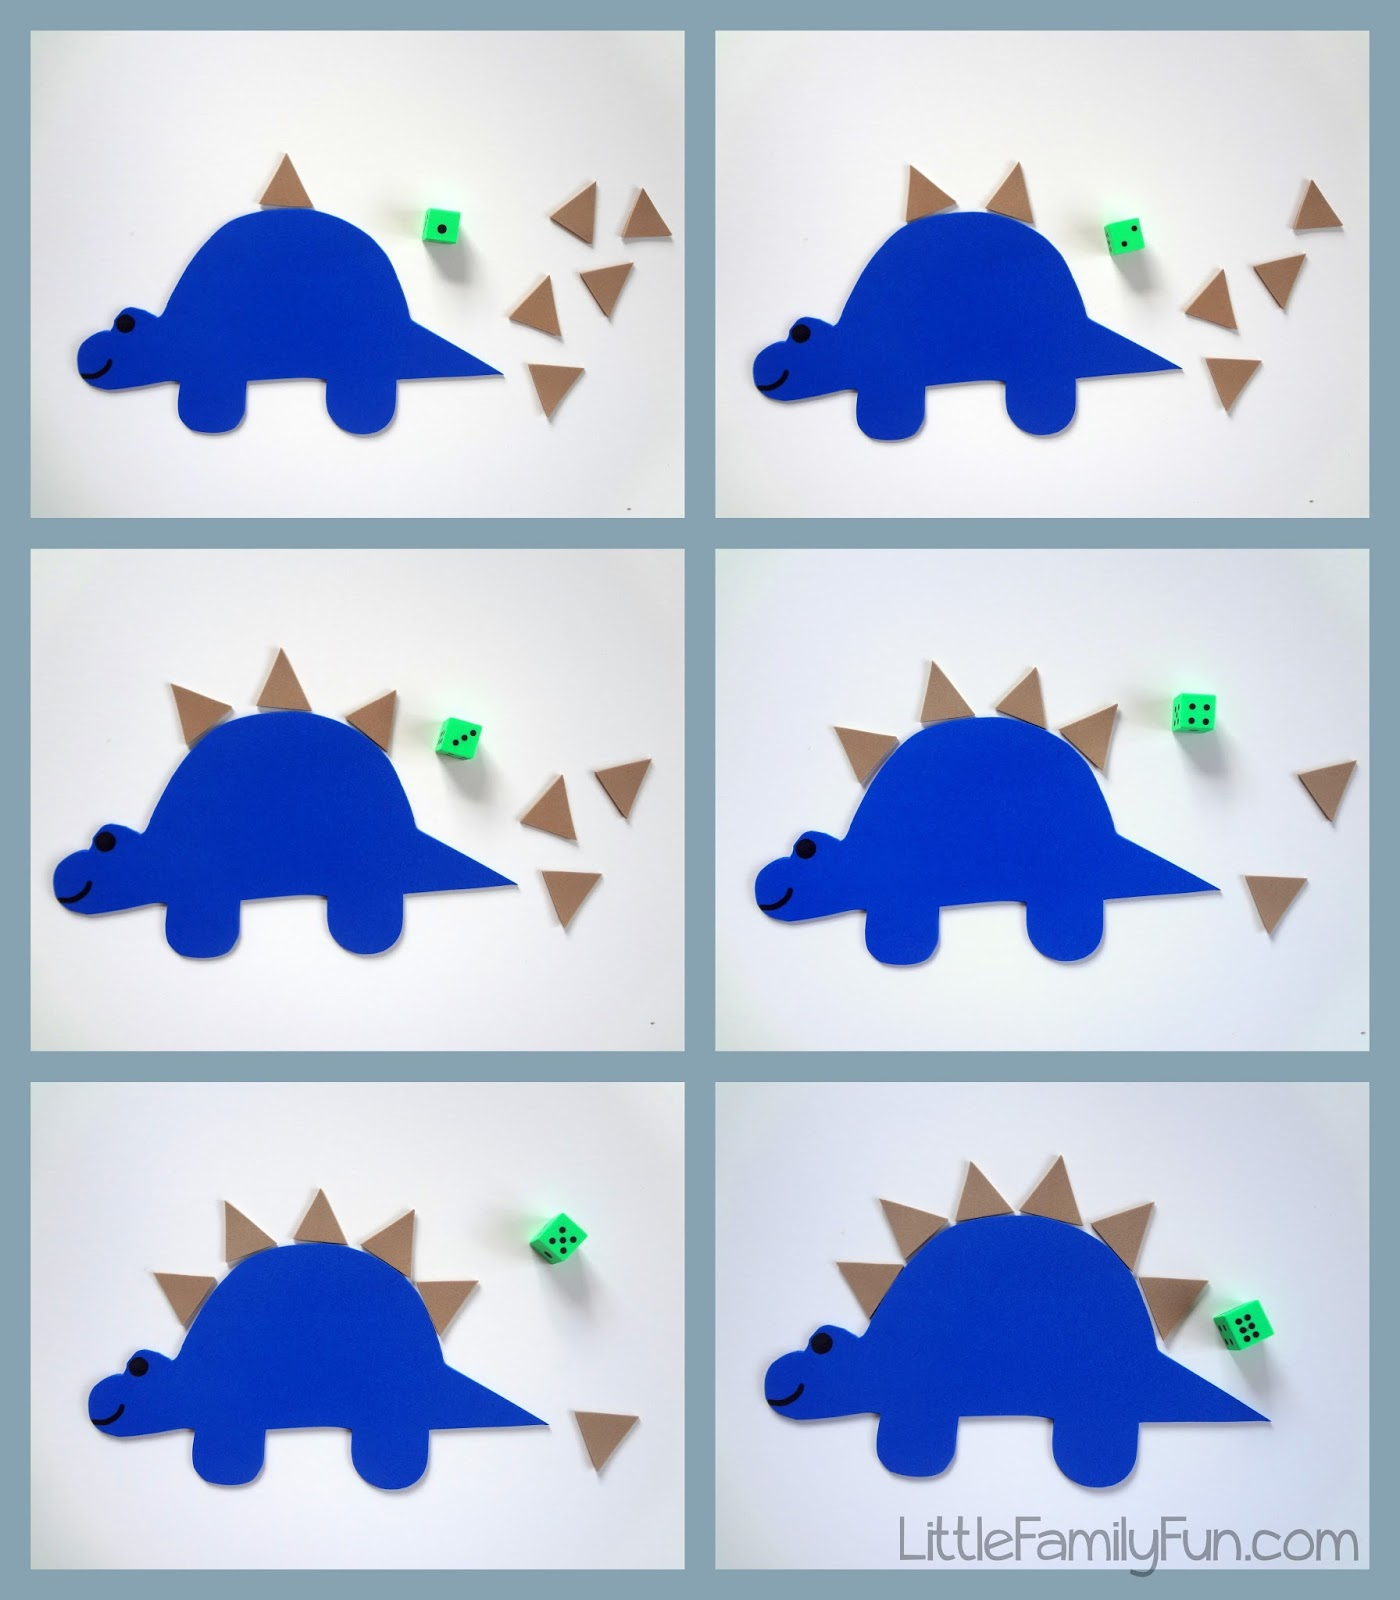 Little Family Fun Stegosaurus Counting Game